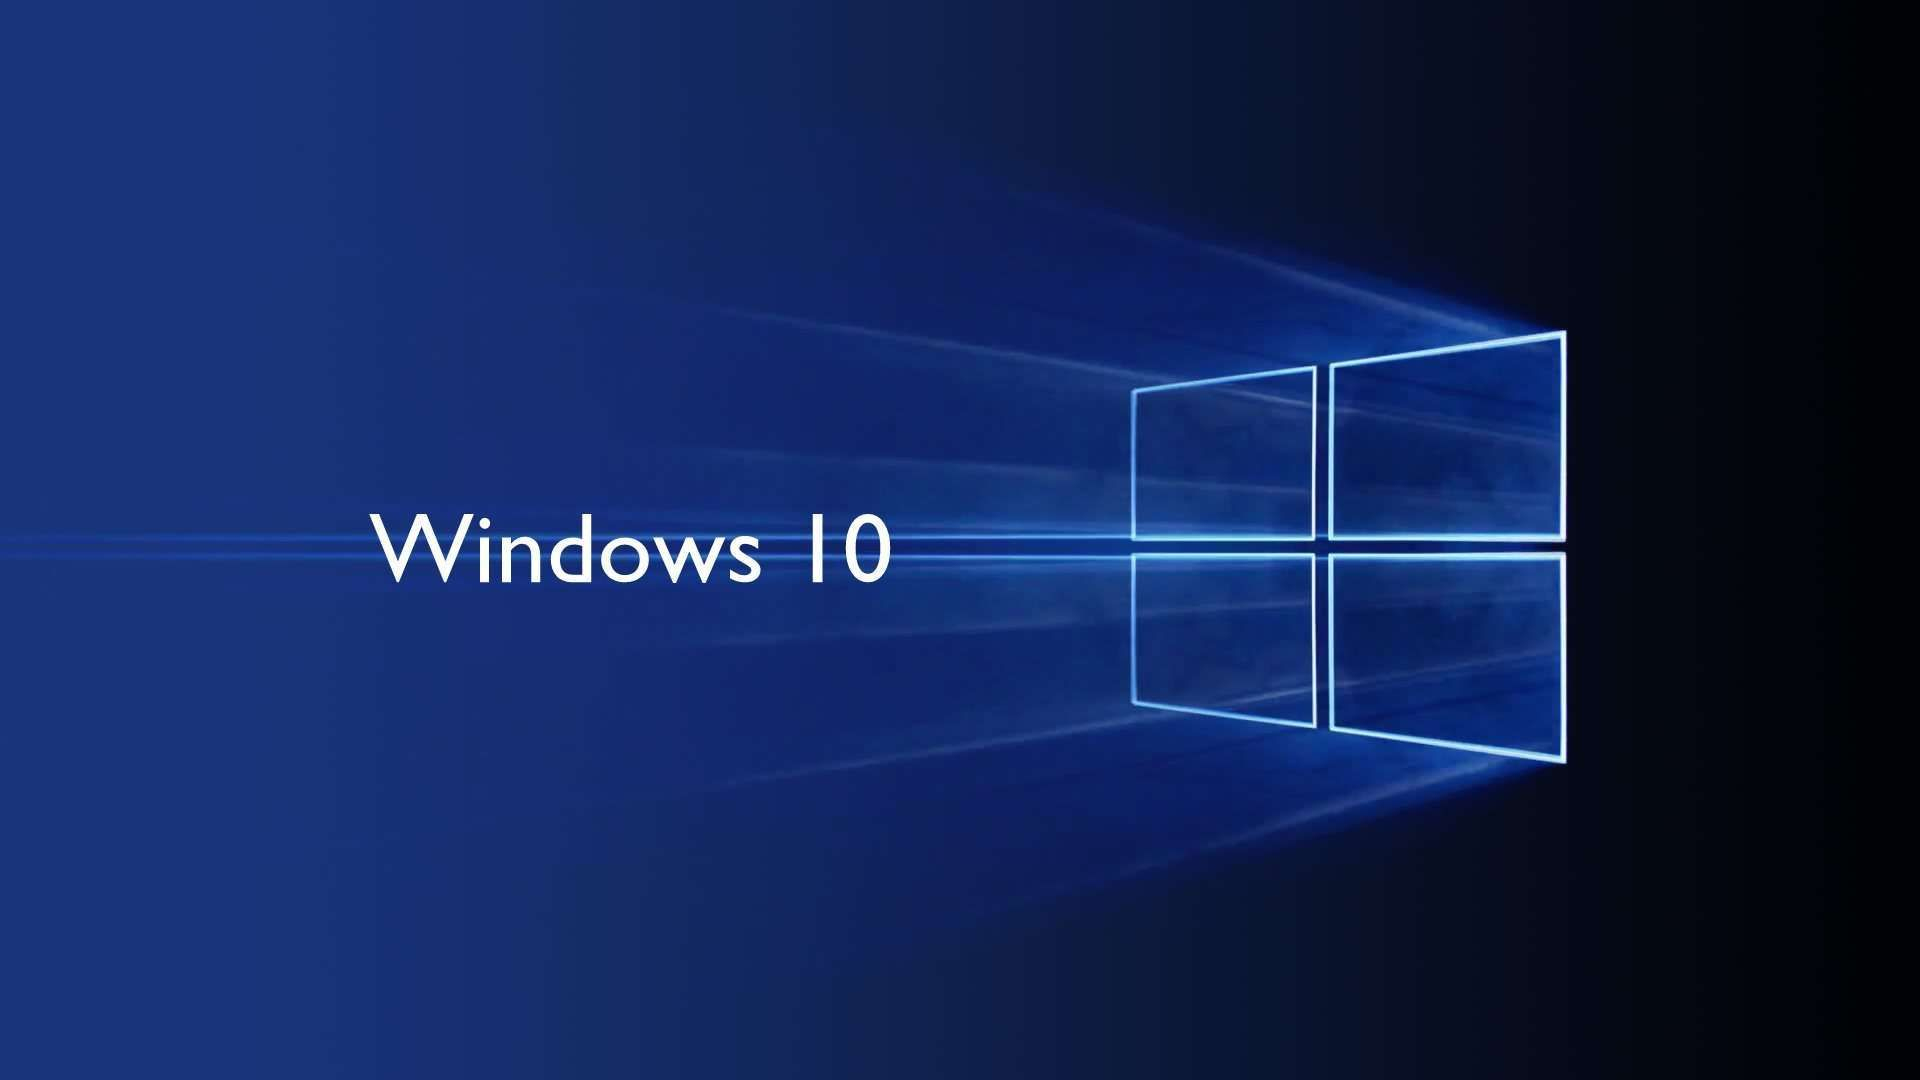 Windows 10 Hd Desktop 1080p Wallpaper Windows 10 Windows 10